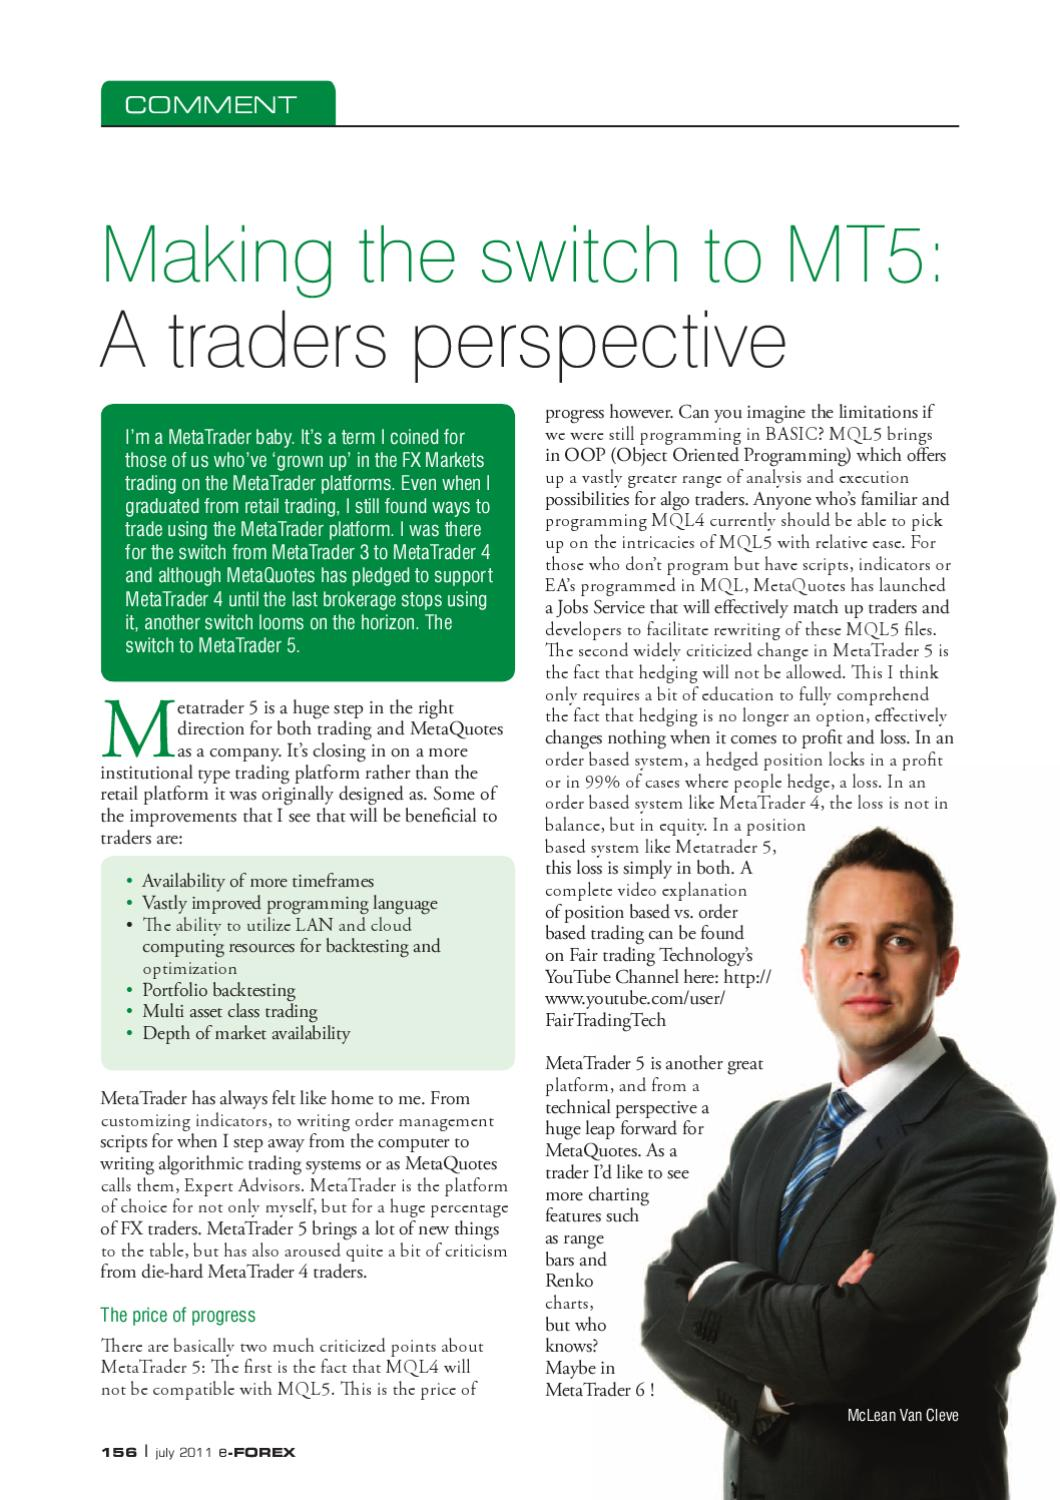 Making the Switch to MT5 by McLean Van Cleve - issuu